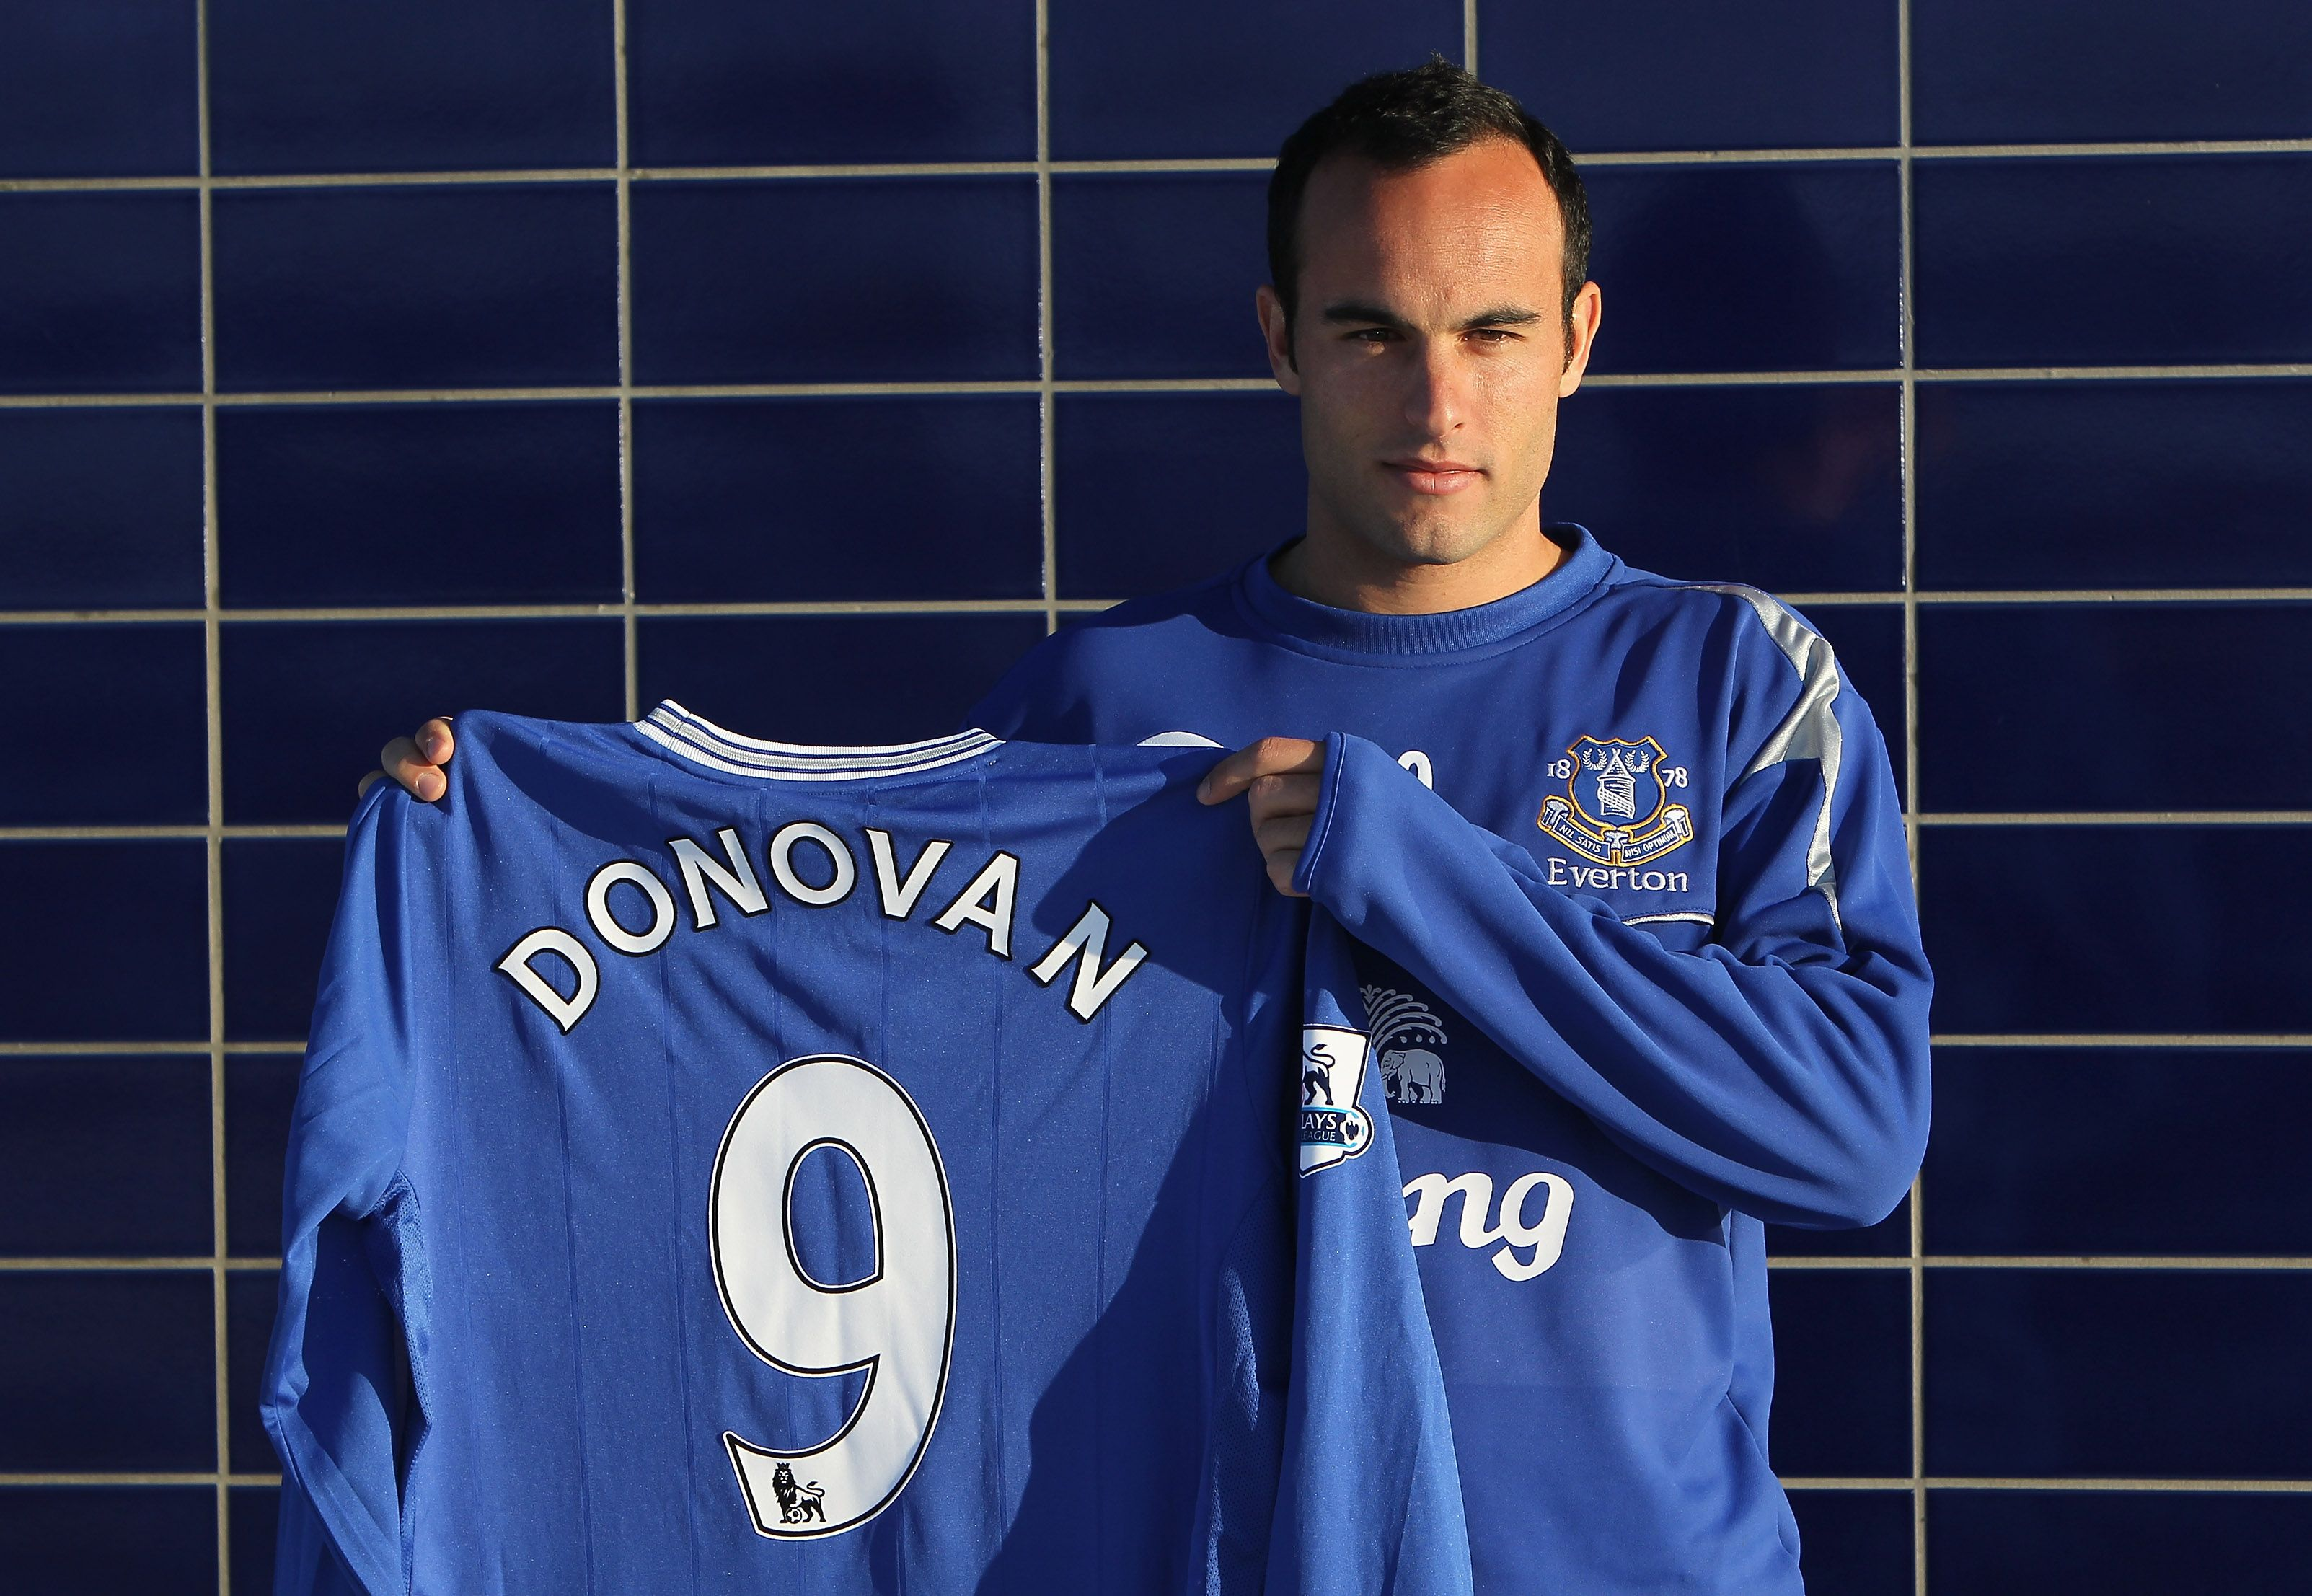 Top 10 MLS loan stars your club could sign: Donovan, Henry, Shea ...